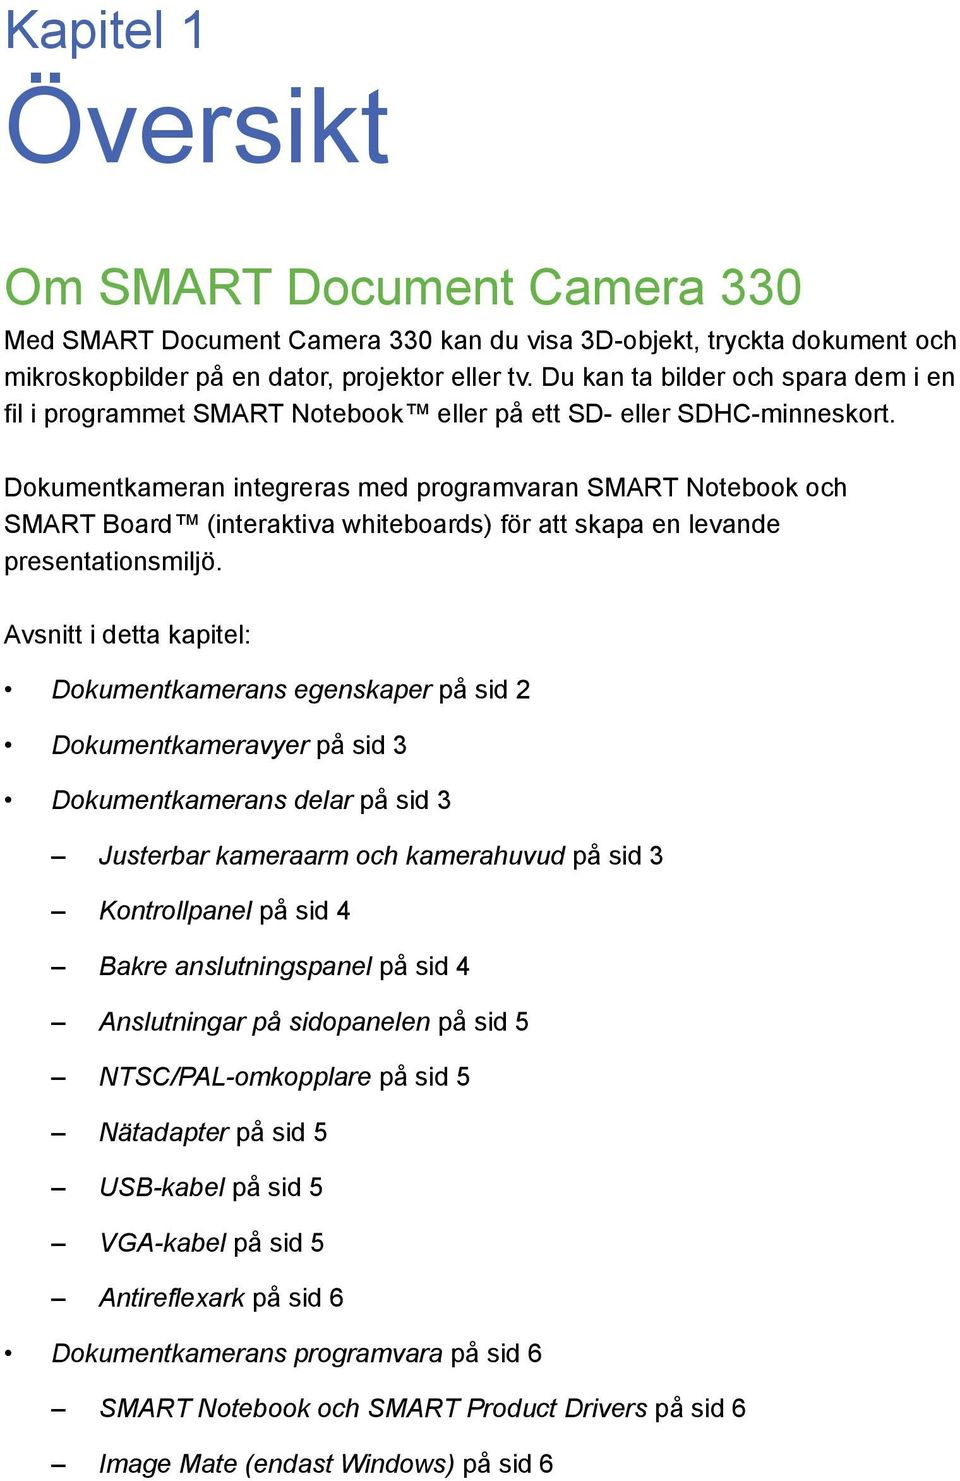 Dokumentkameran integreras med programvaran SMART Notebook och SMART Board (interaktiva whiteboards) för att skapa en levande presentationsmiljö.